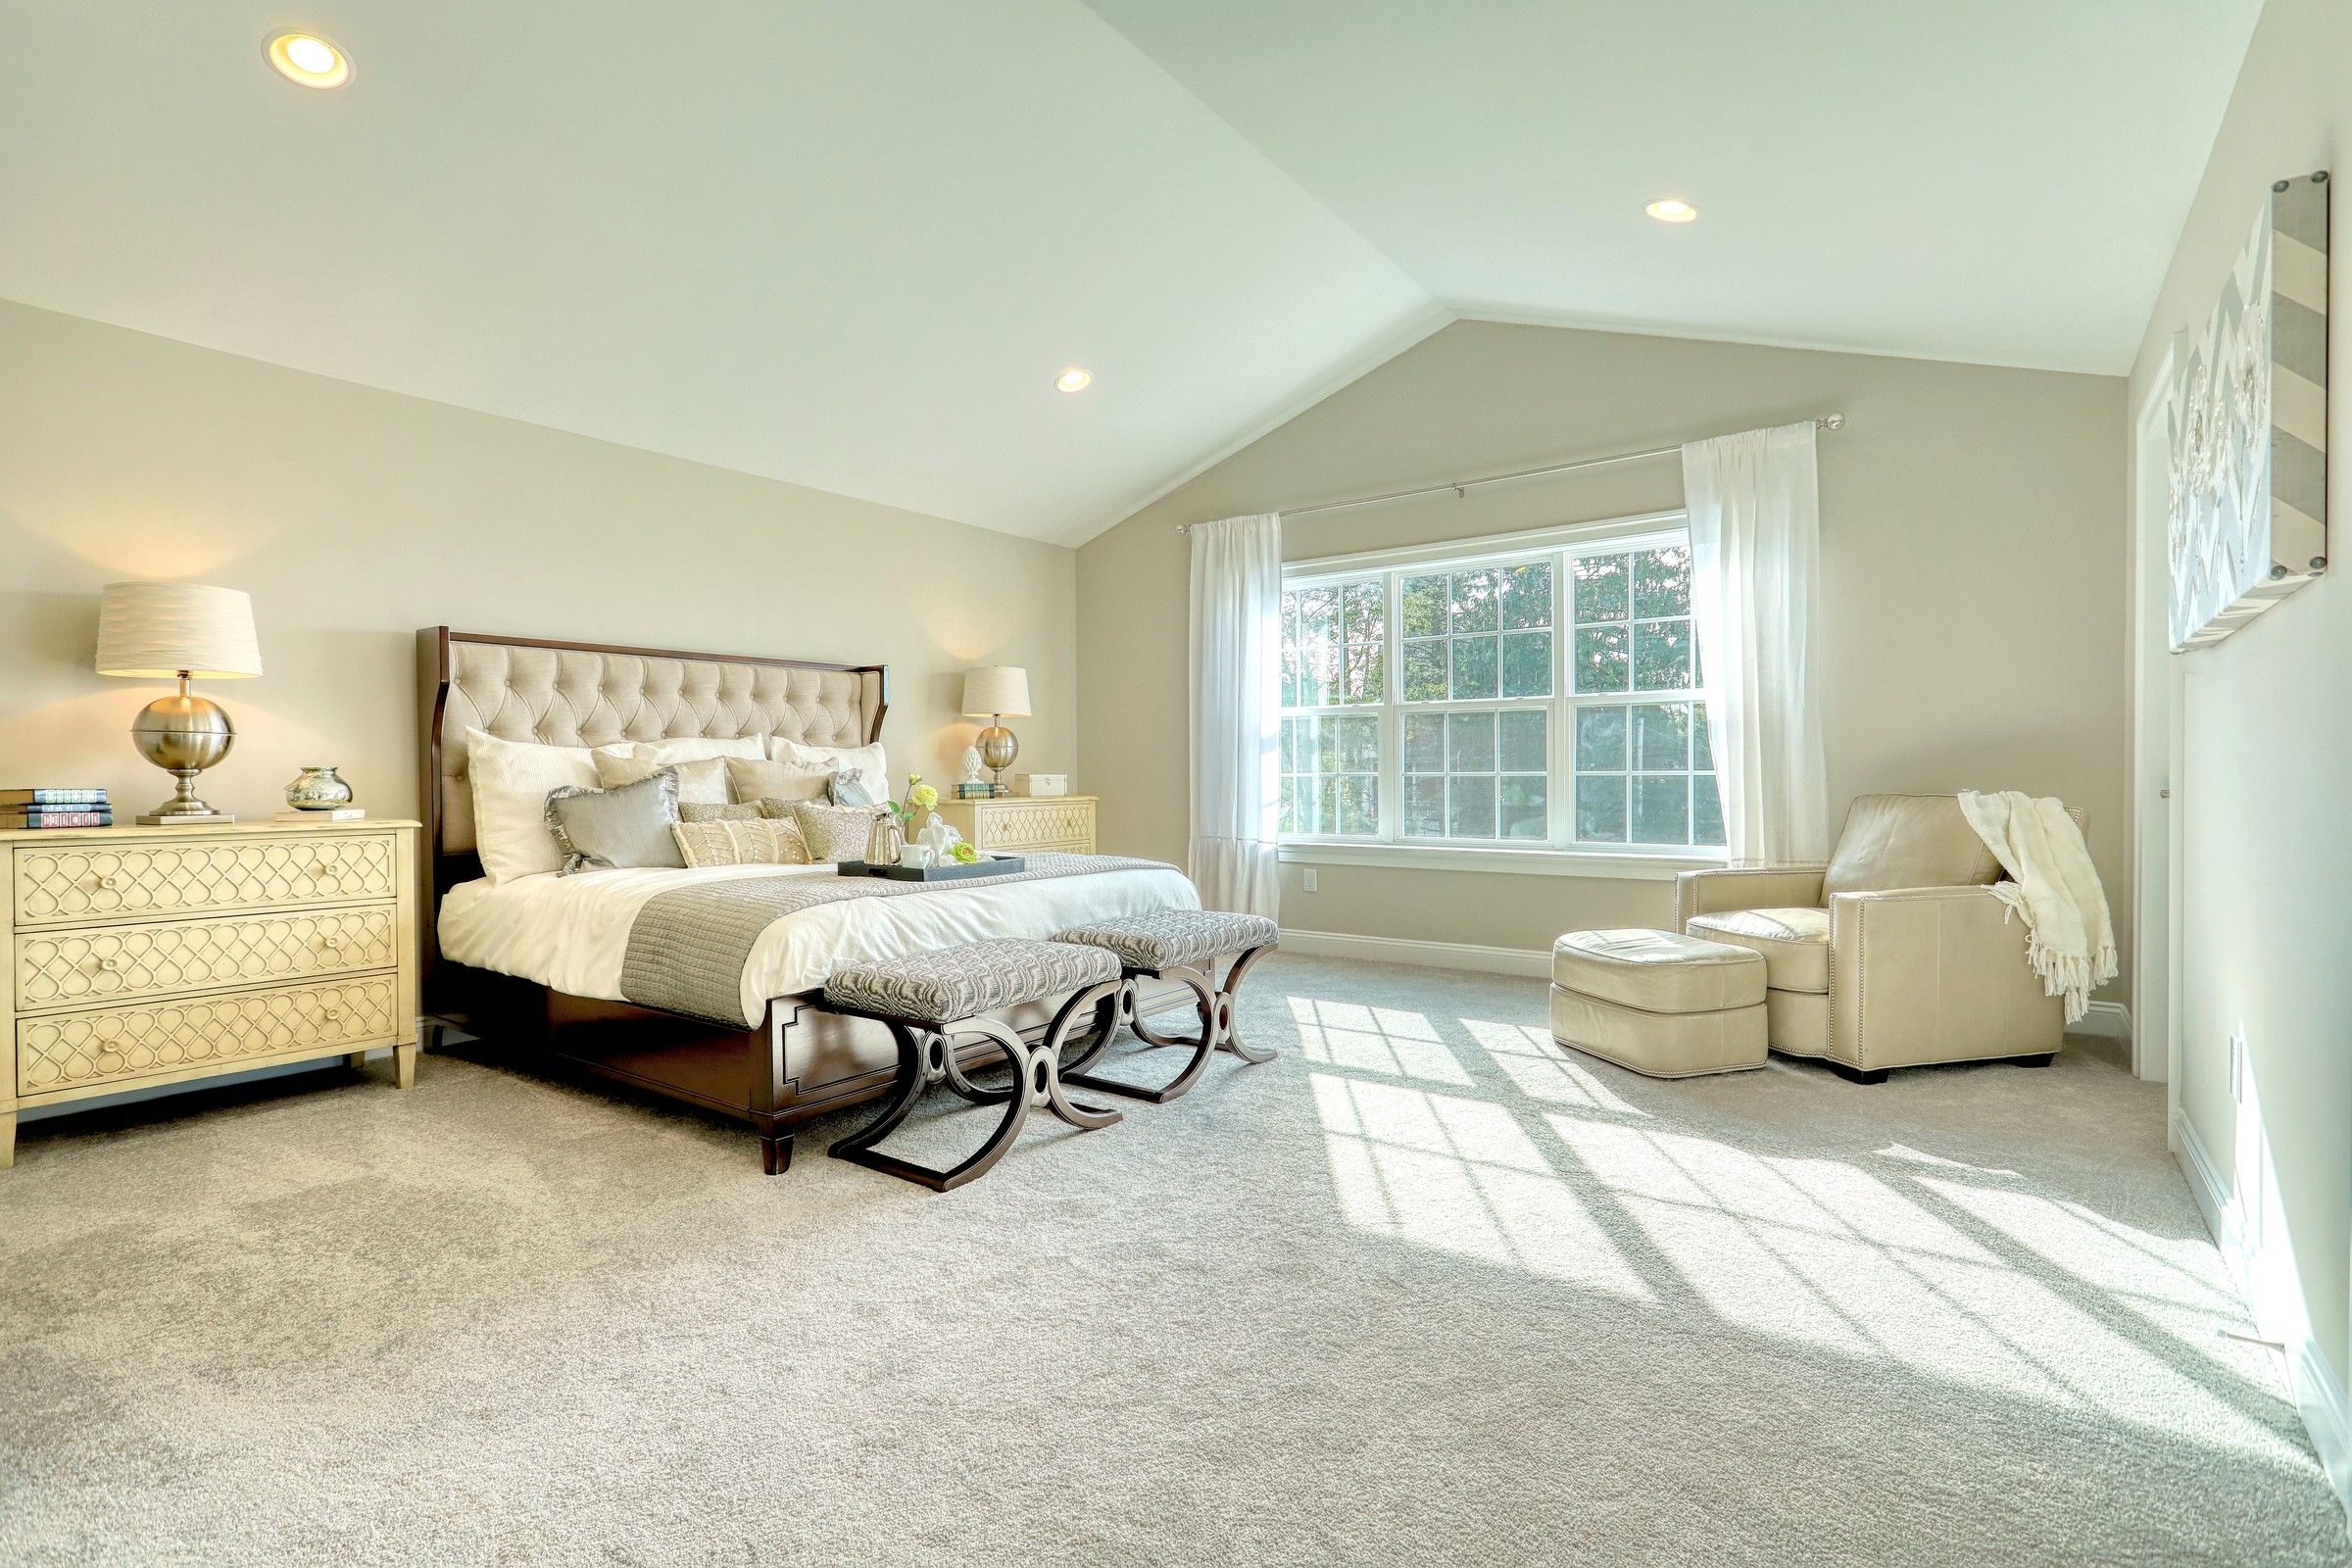 Bedroom featured in the Parker Heritage By Keystone Custom Homes in York, PA